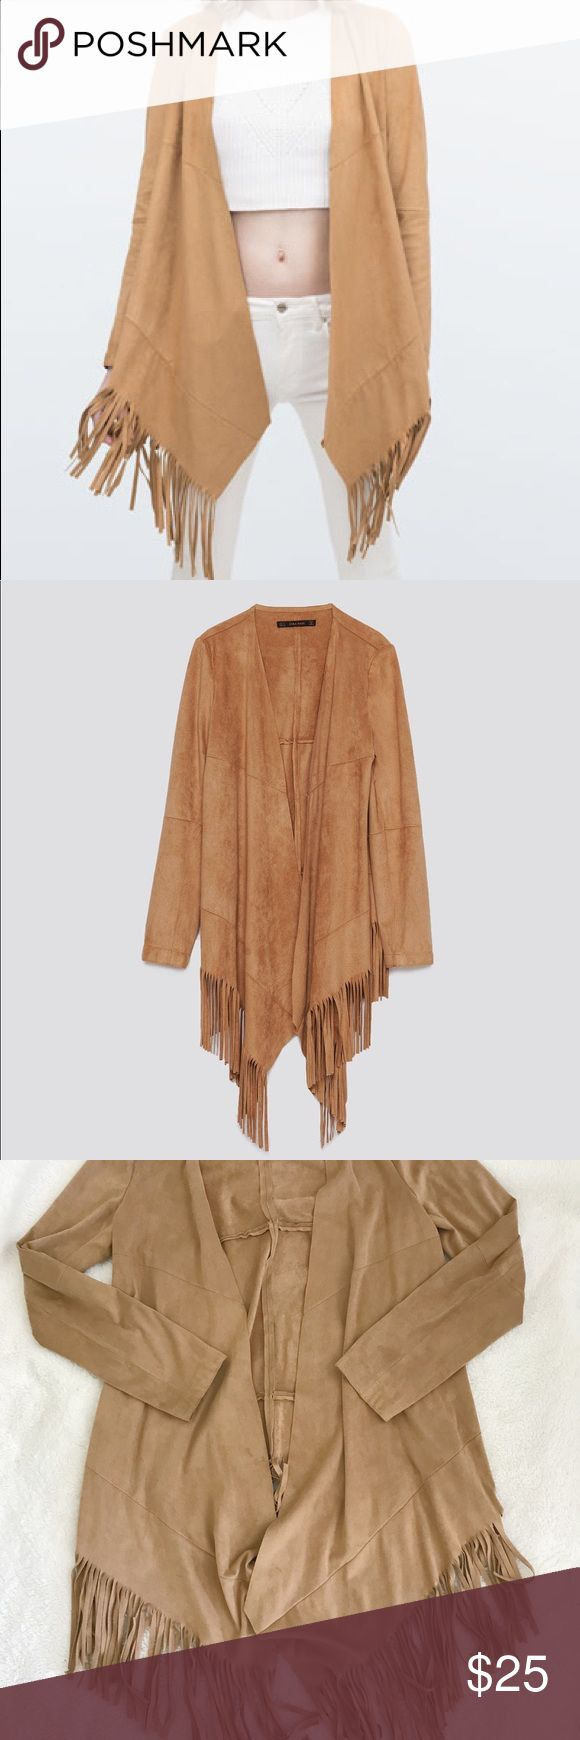 🧡ZARA SUEDE FRINGE JACKET🧡 Only worn once! In excellent condition!   I always ship within 12-24 hours ⏰ Send me an offer 💌  ♥️ DO NOT ASK ME MY LOWEST OR MAKE AN OFFER THROUGH THE COMMENTS SECTION, ONLY OFFERS MADE THROUGH THE OFFER BUTTON ARE CONSIDERED, I WILL NOT REPLY TO YOUR COMMENT♥️  🔥ON GOING SALE: BUY 2 GET 1 FREE ON ALL ITEMS $10 & BELOW! ADD THEM TO A BUNDLE TO RECEIVE DISCOUNTED PRICE🔥 Zara Jackets & Coats